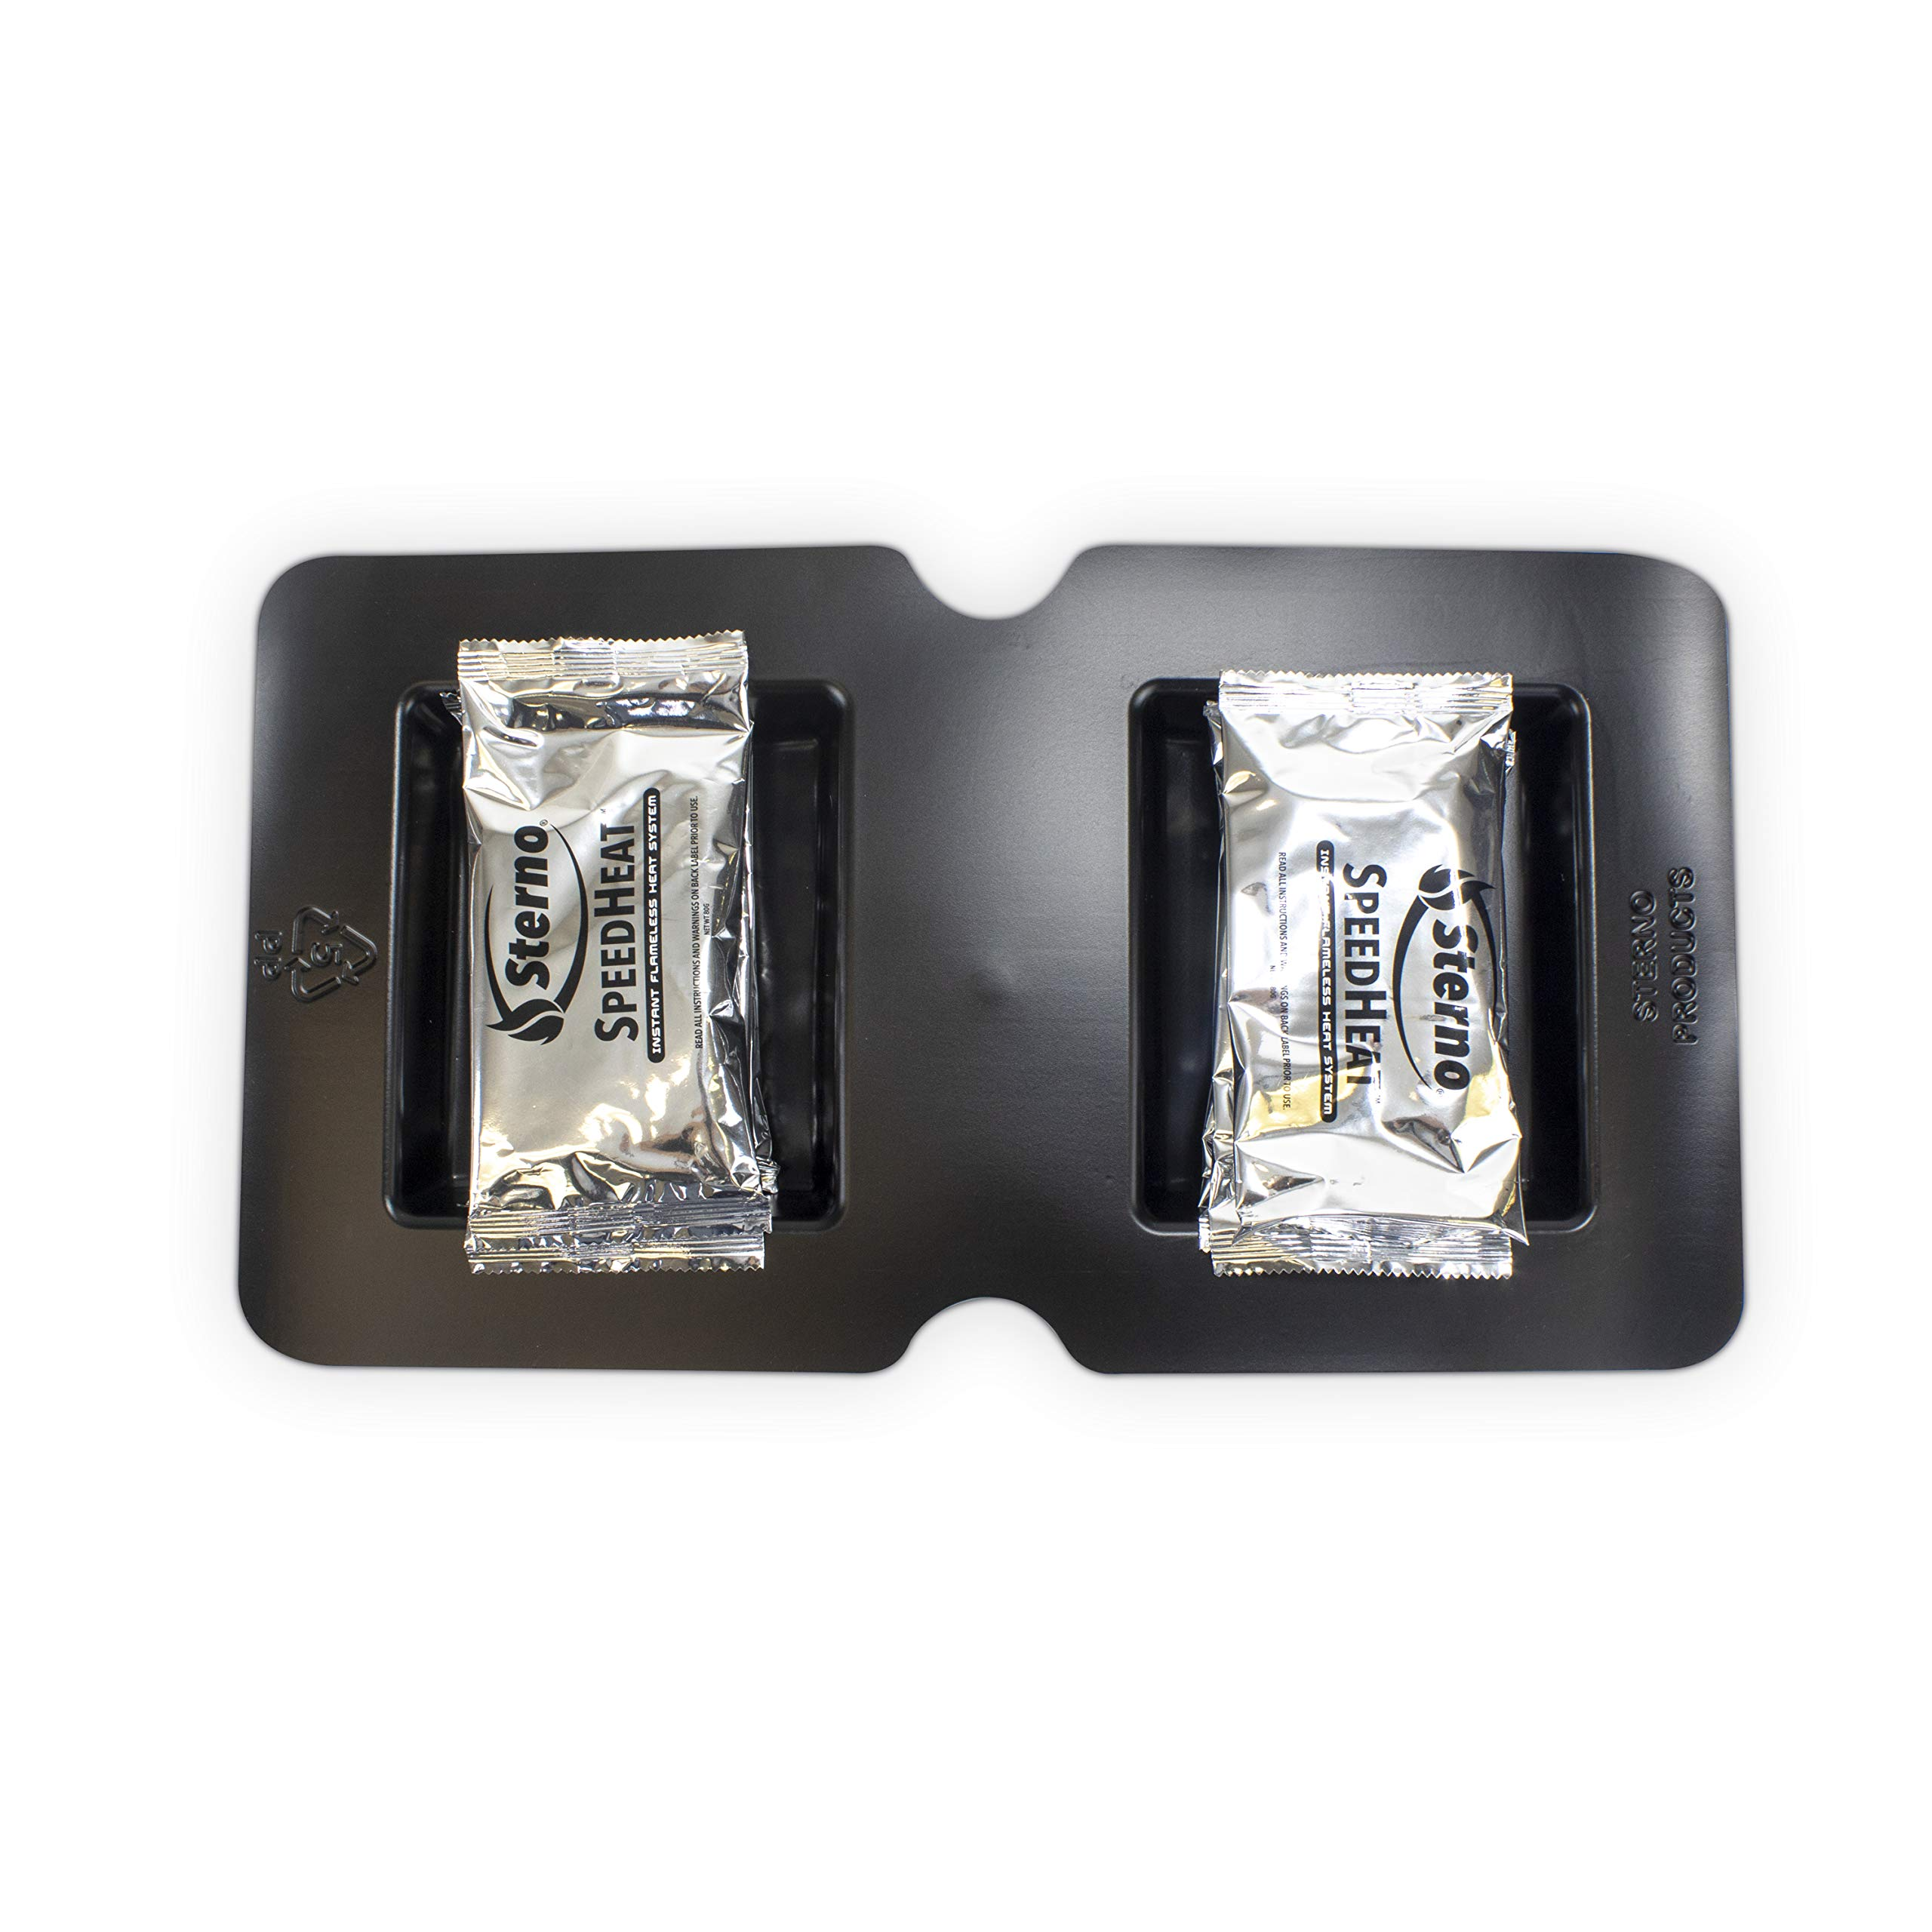 Sterno 70356 SpeedHeat Flameless Food Warming System Tray and Packet Refills 3 Pack